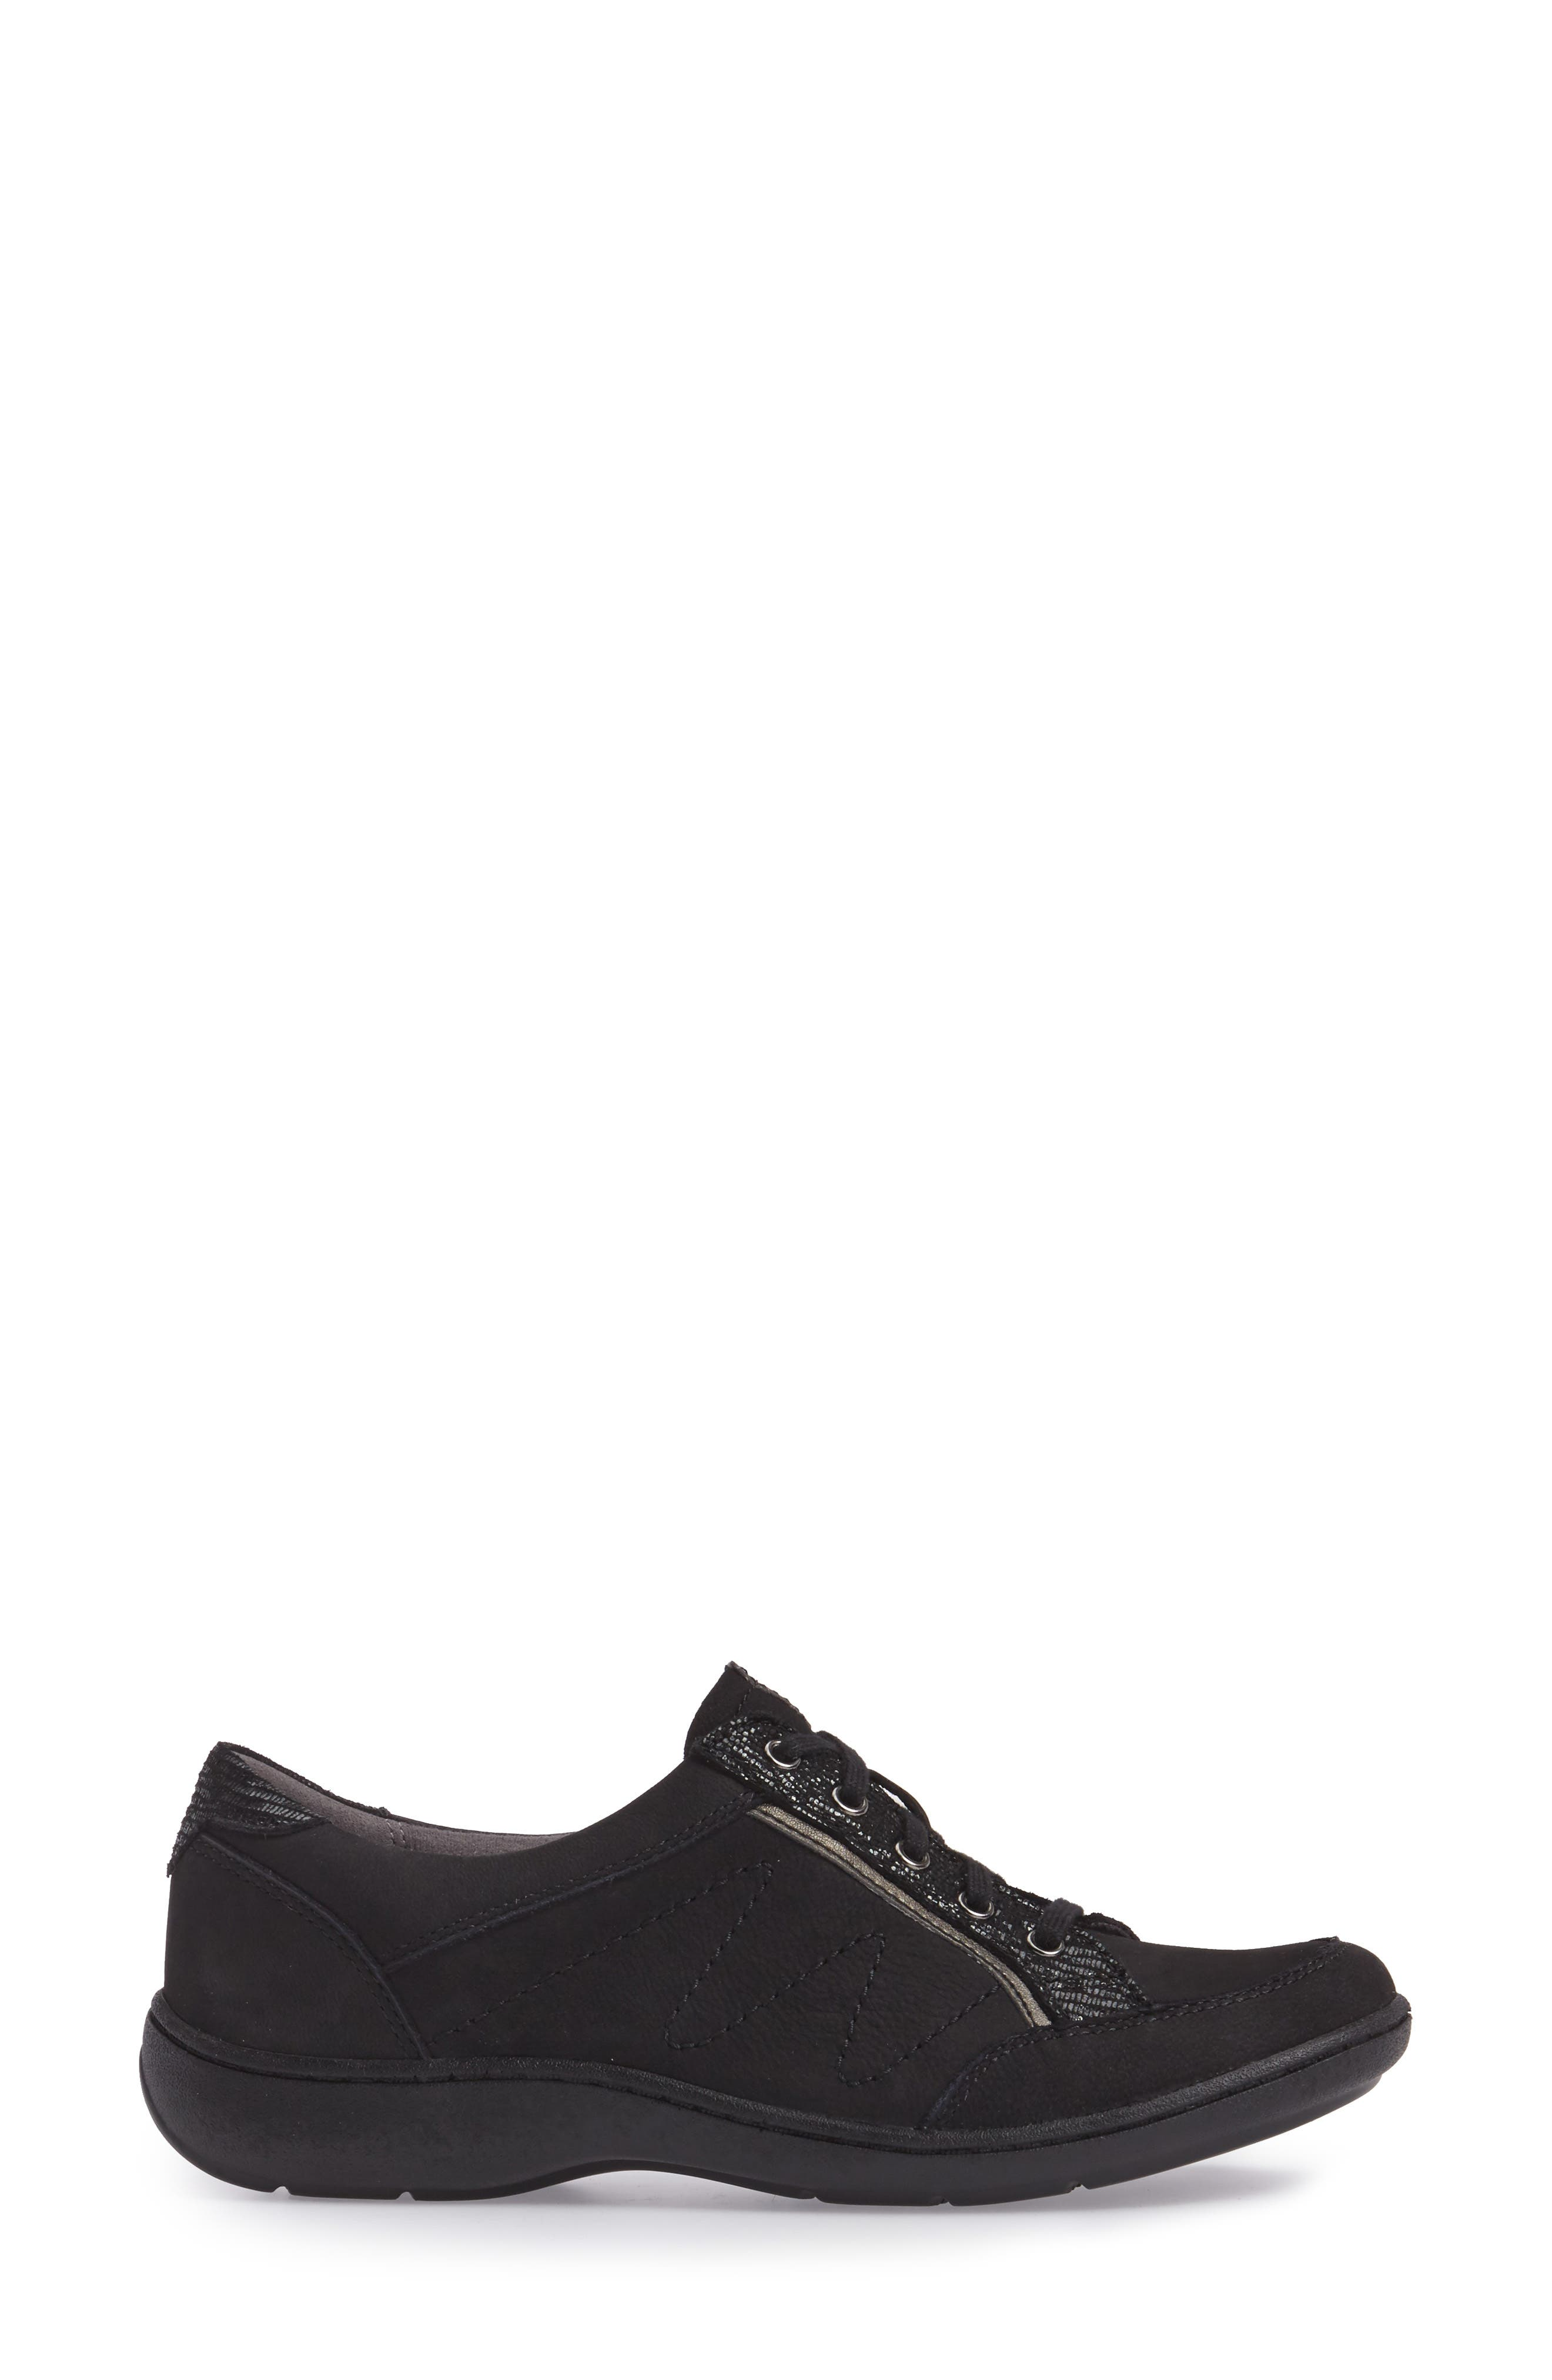 Bromly Sneaker,                             Alternate thumbnail 3, color,                             Black Fabric